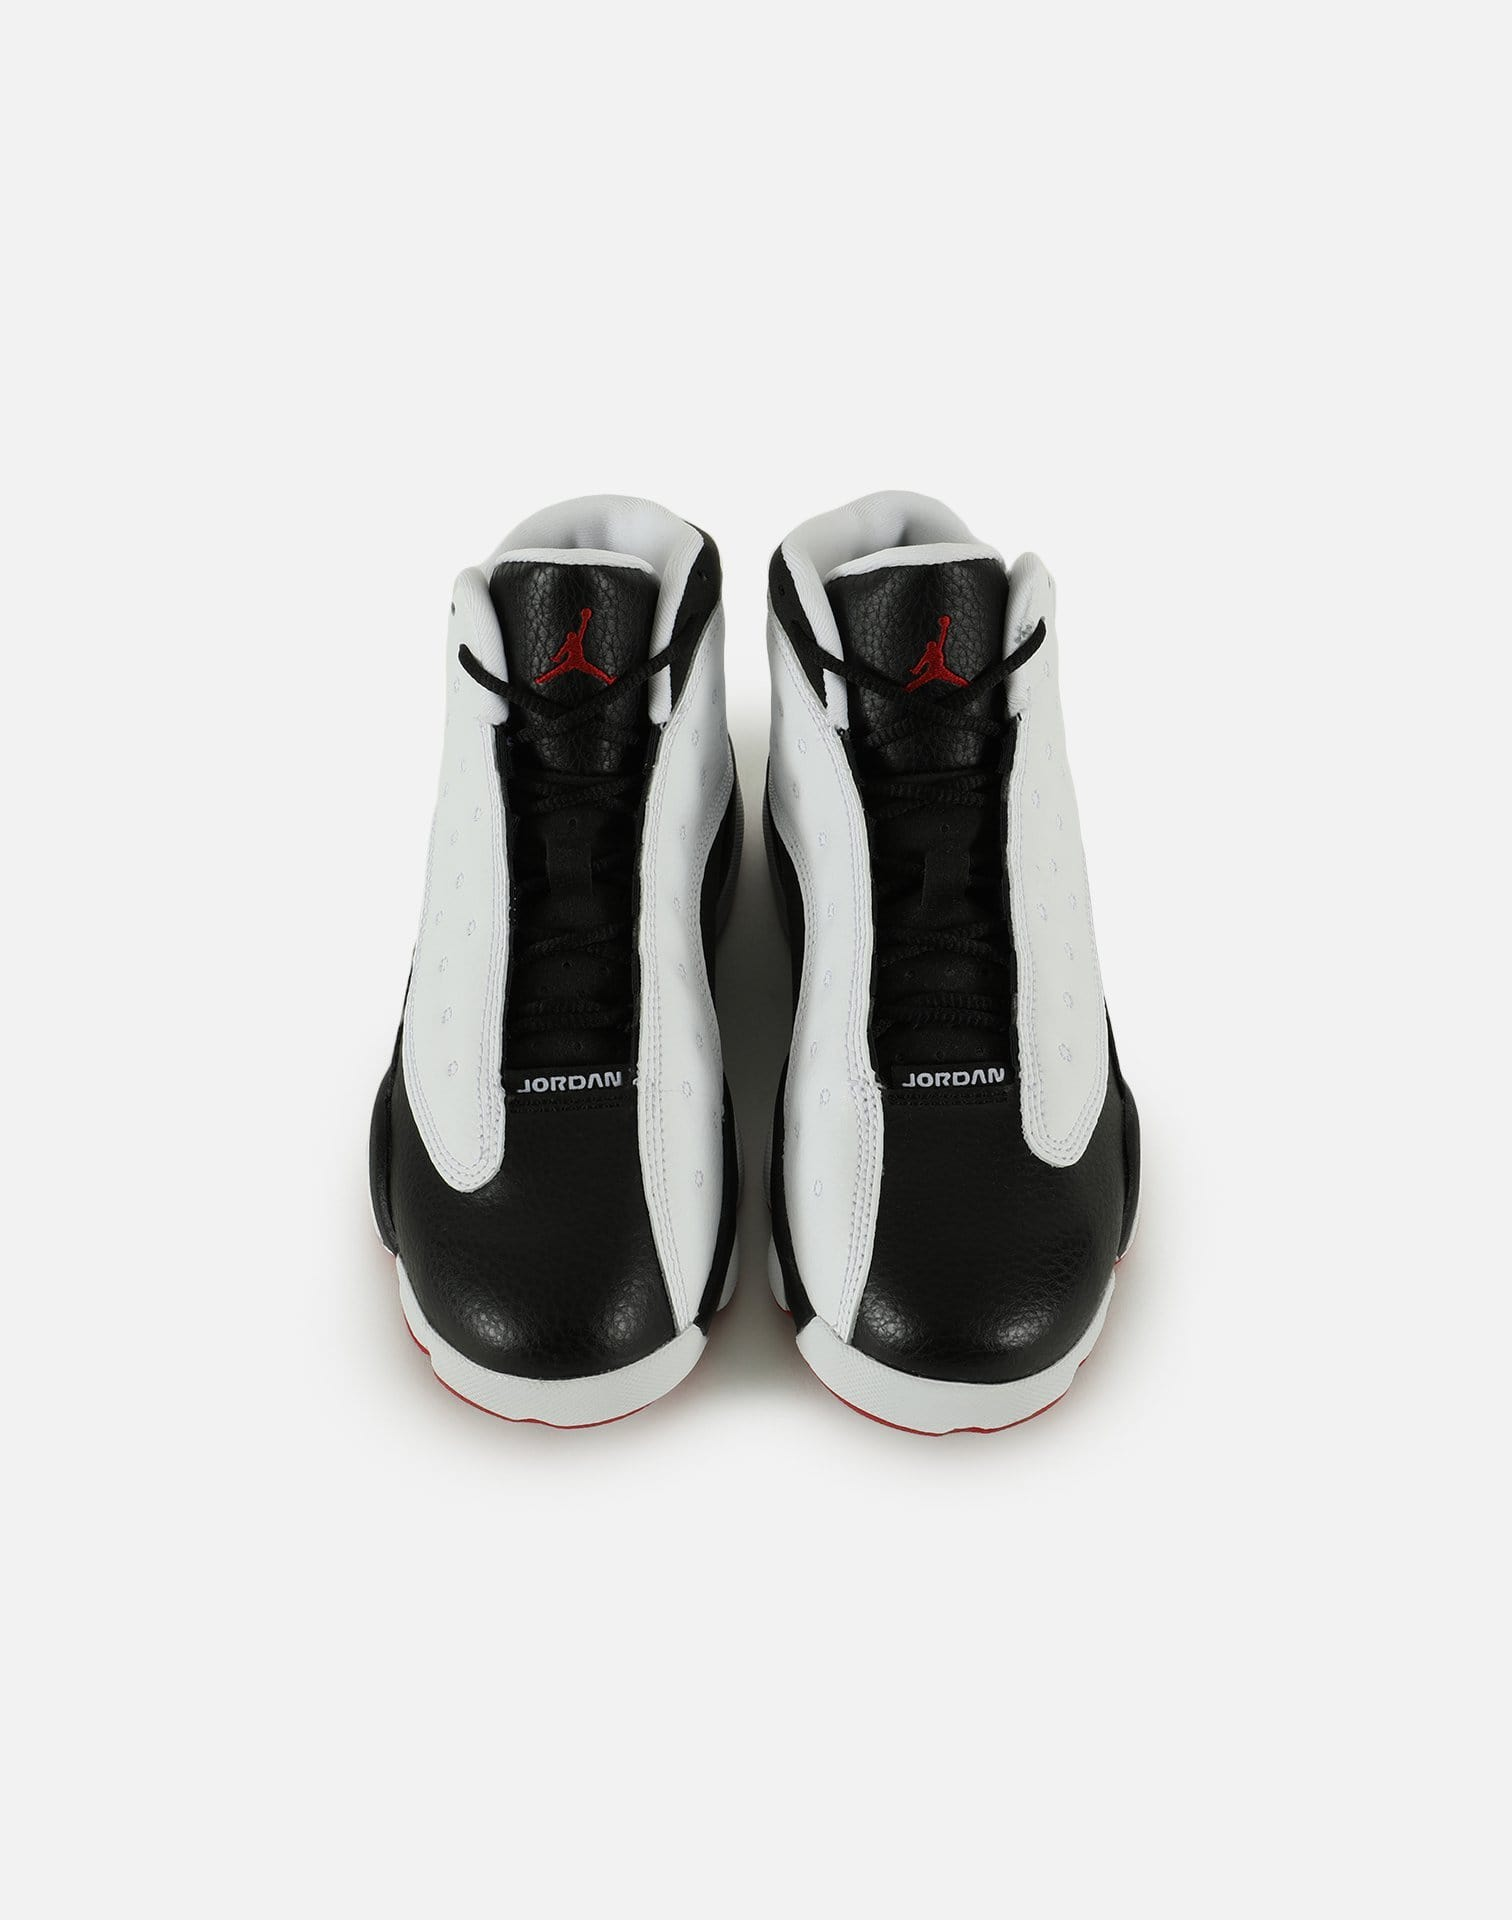 Jordan Air Jordan Retro 13 'He Got Game' Pre-School